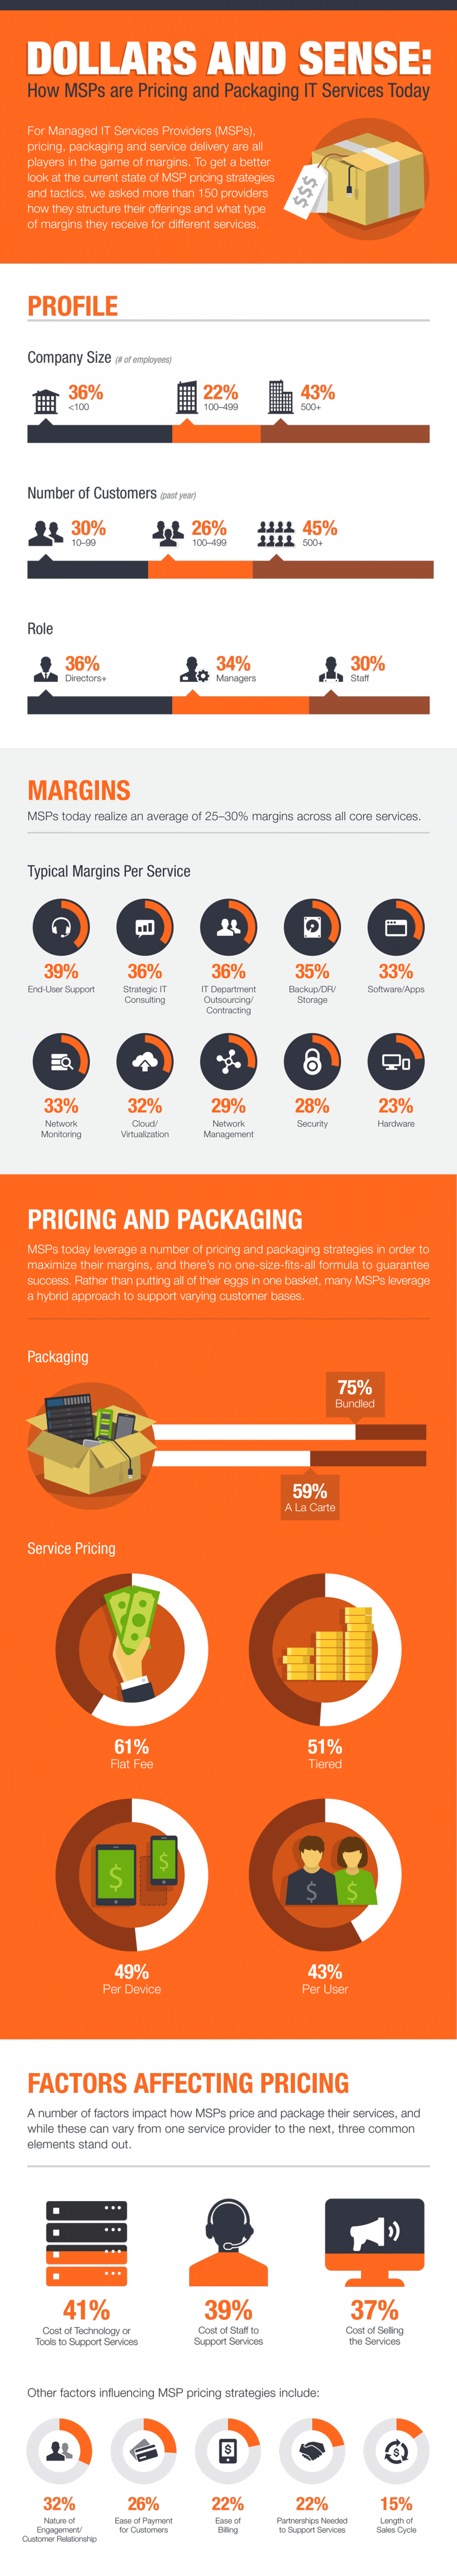 How MSPs Price & Package IT Services Today Infographic